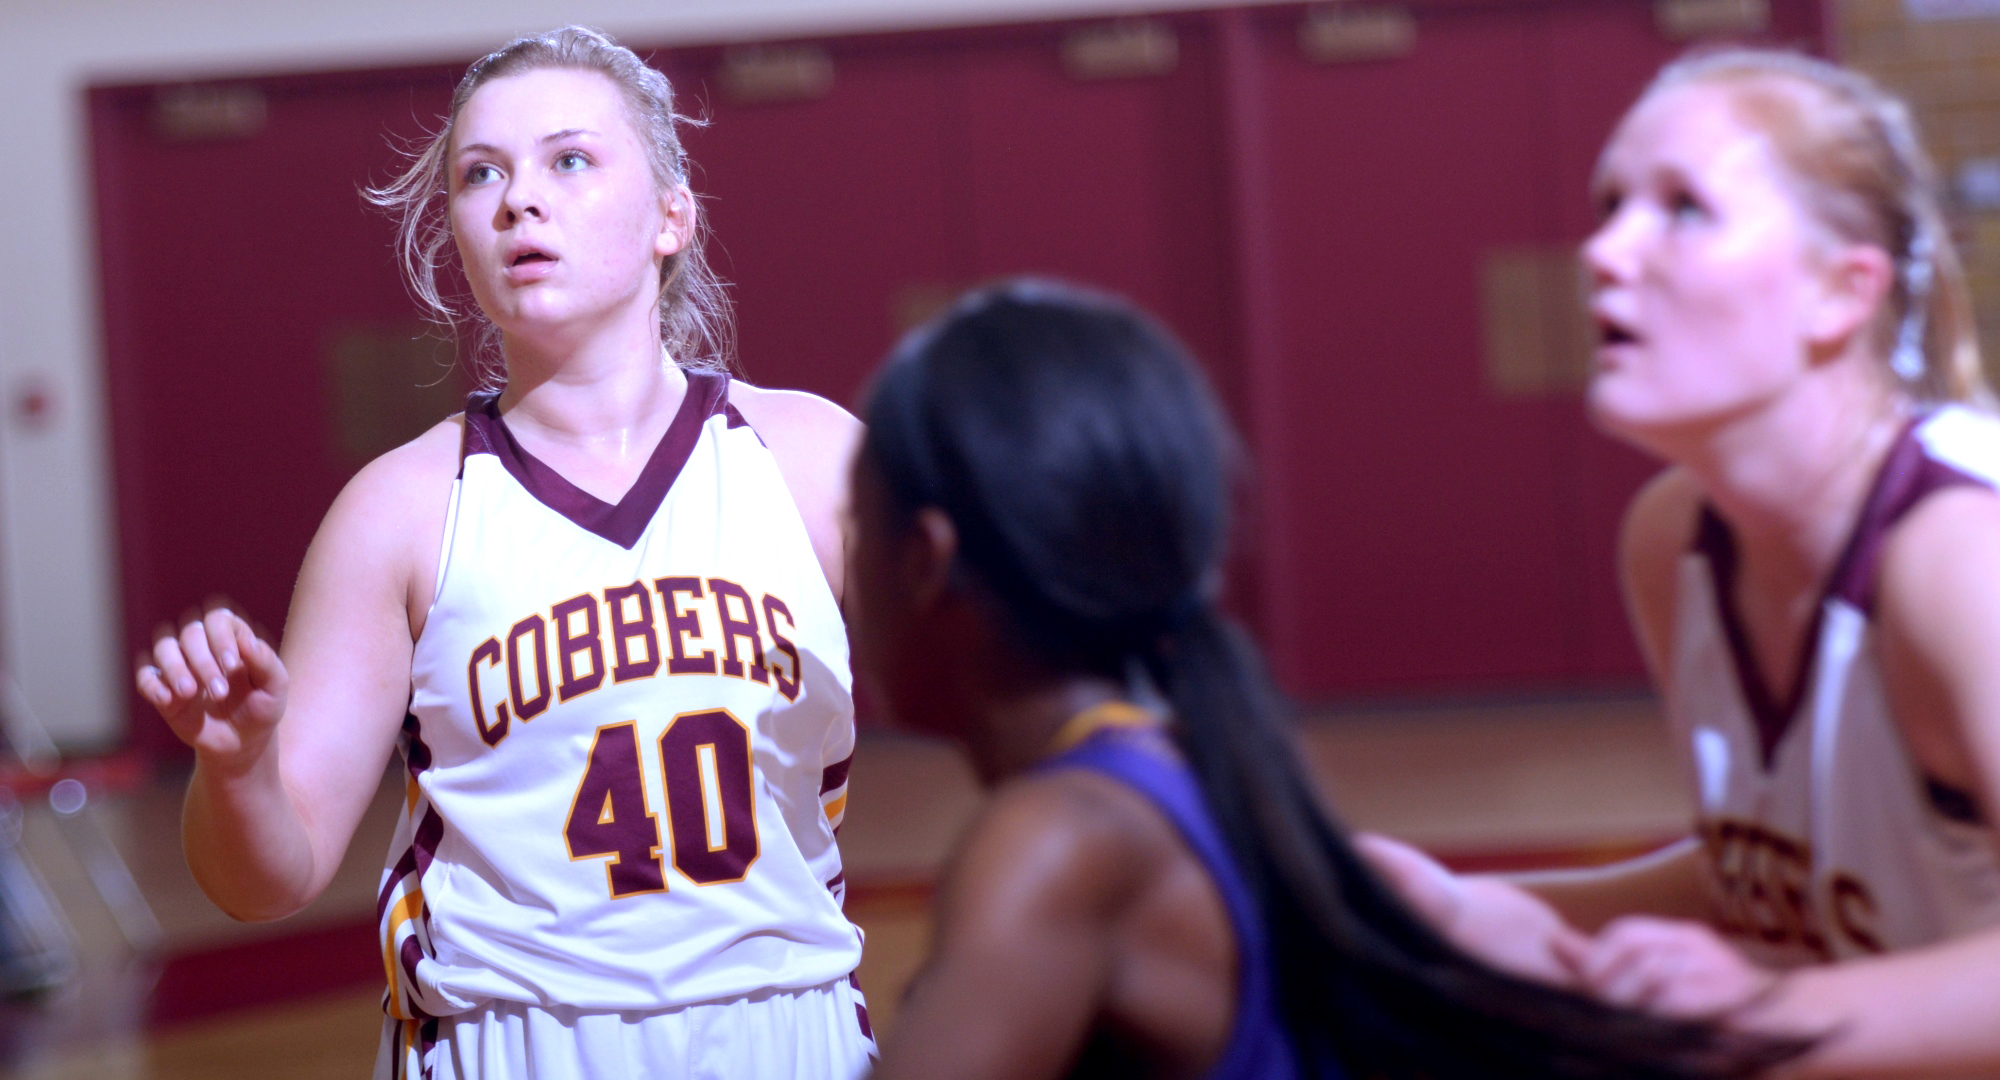 Junior Mira Ellefson scored a team-high 10 points in the Cobbers' game at Augsburg.